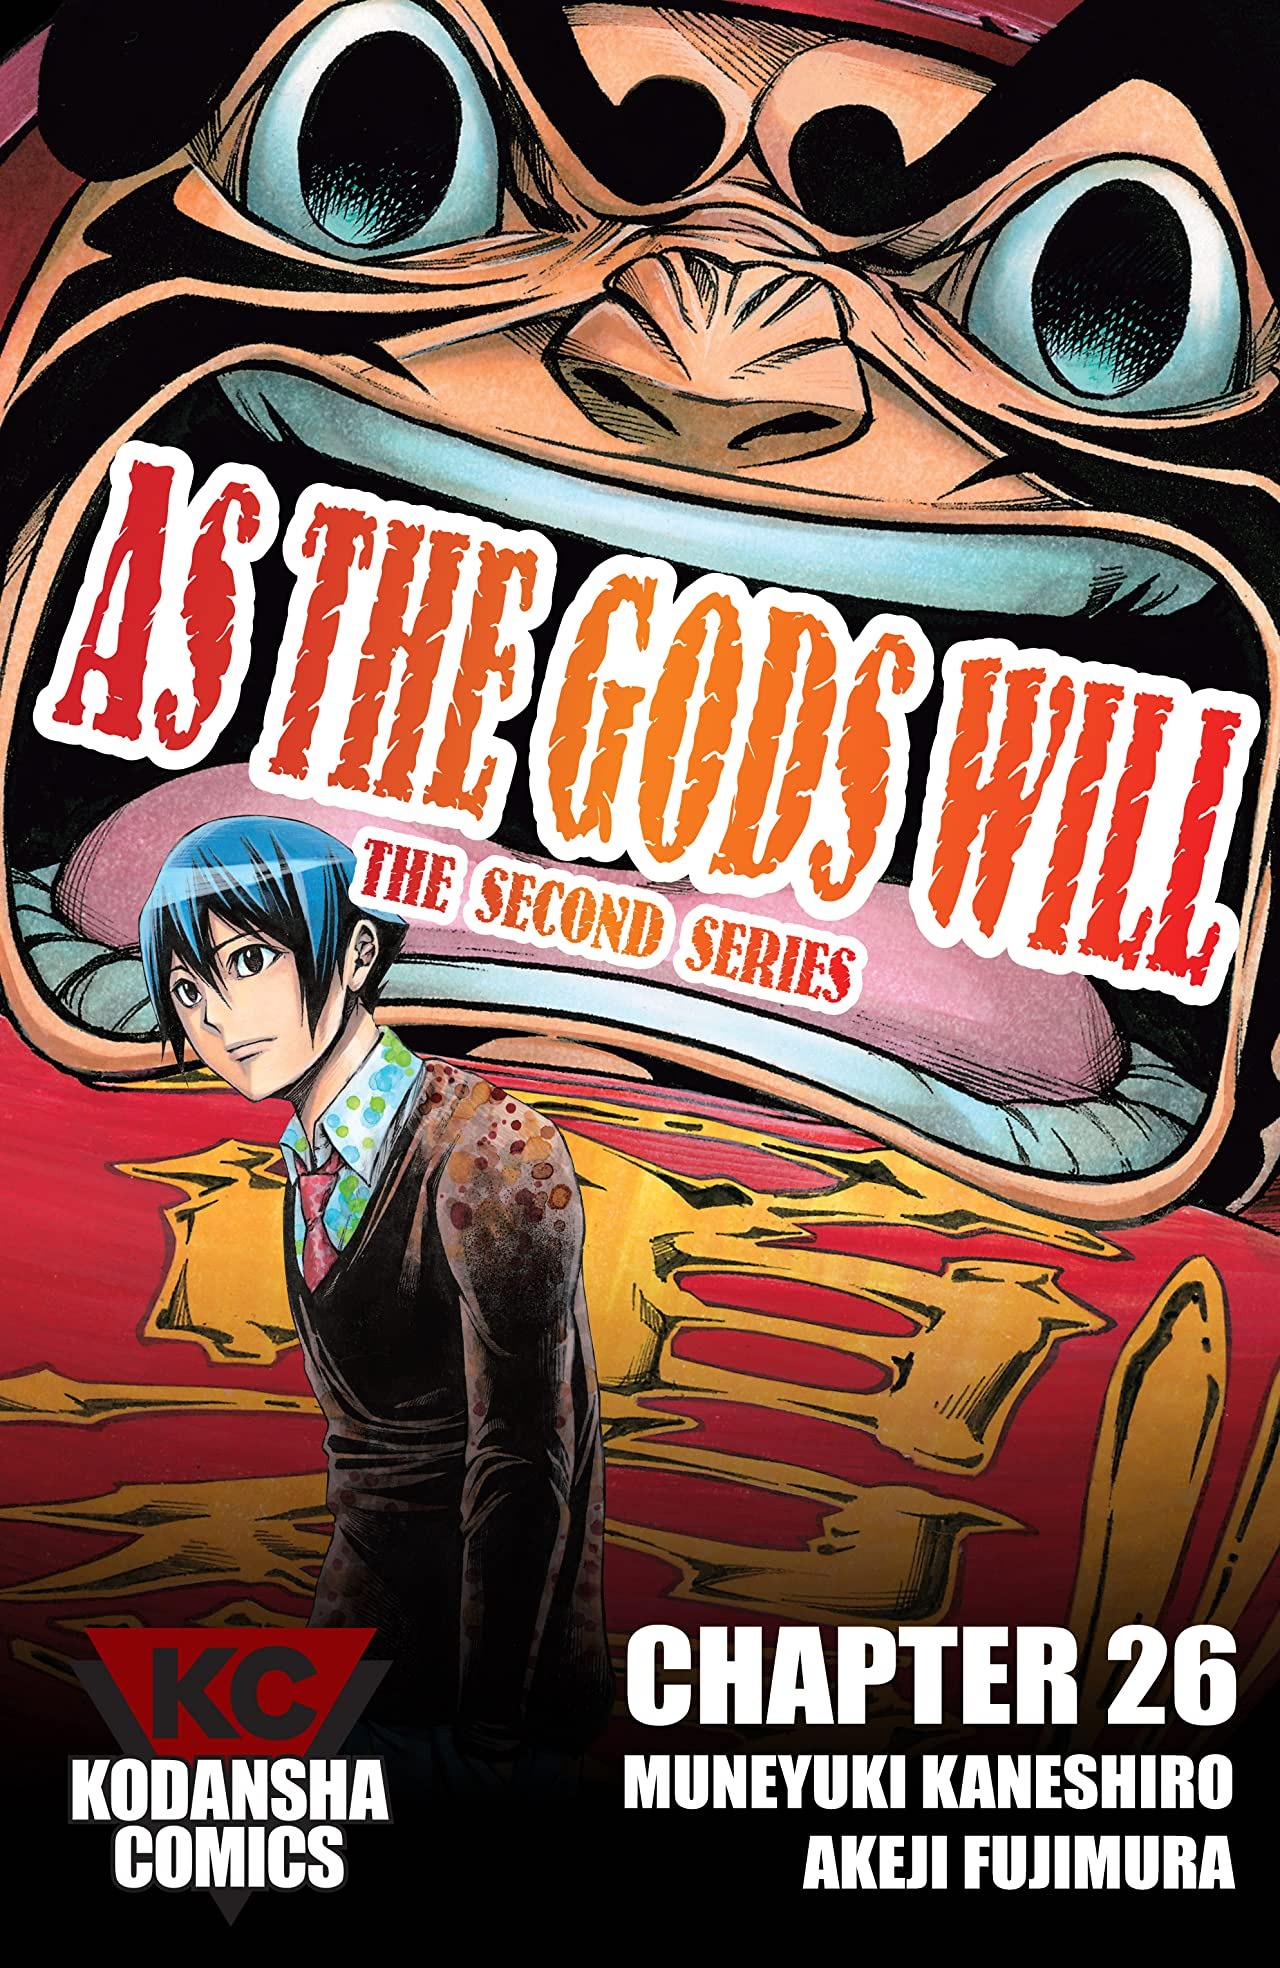 As The Gods Will: The Second Series #26